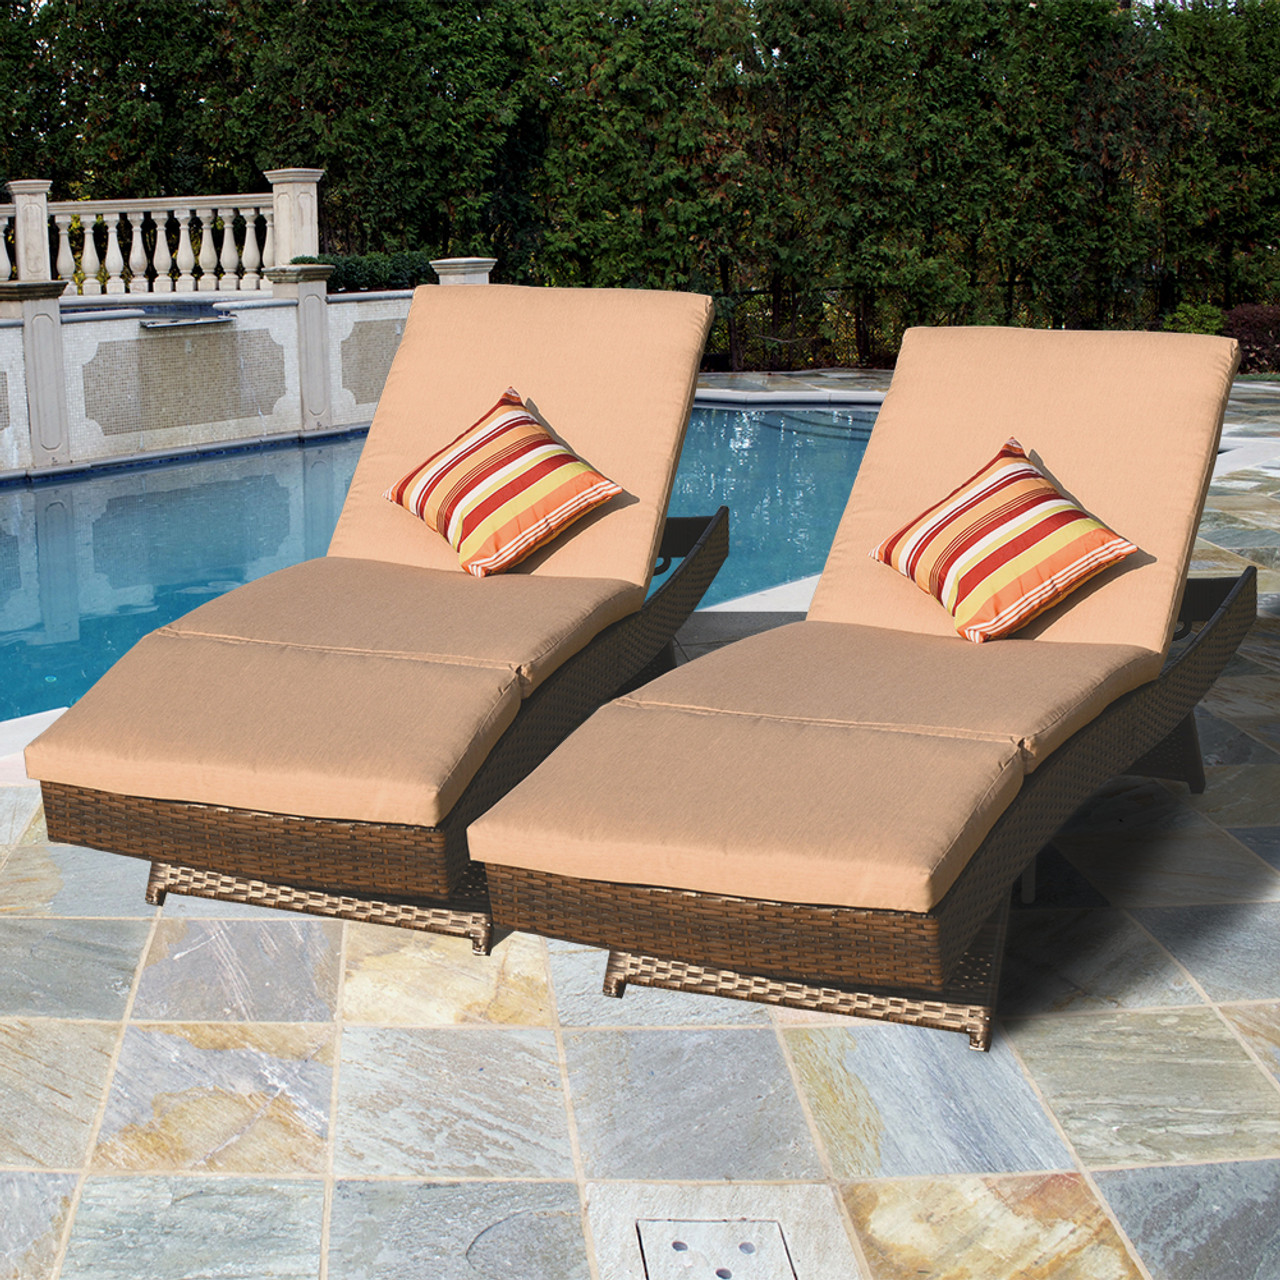 wicker chaise lounge chairs outdoor yellow patio luxury reclining brown chair yard sundale 2pcs deluxe adjustable set with cushions and 2 throw pillows